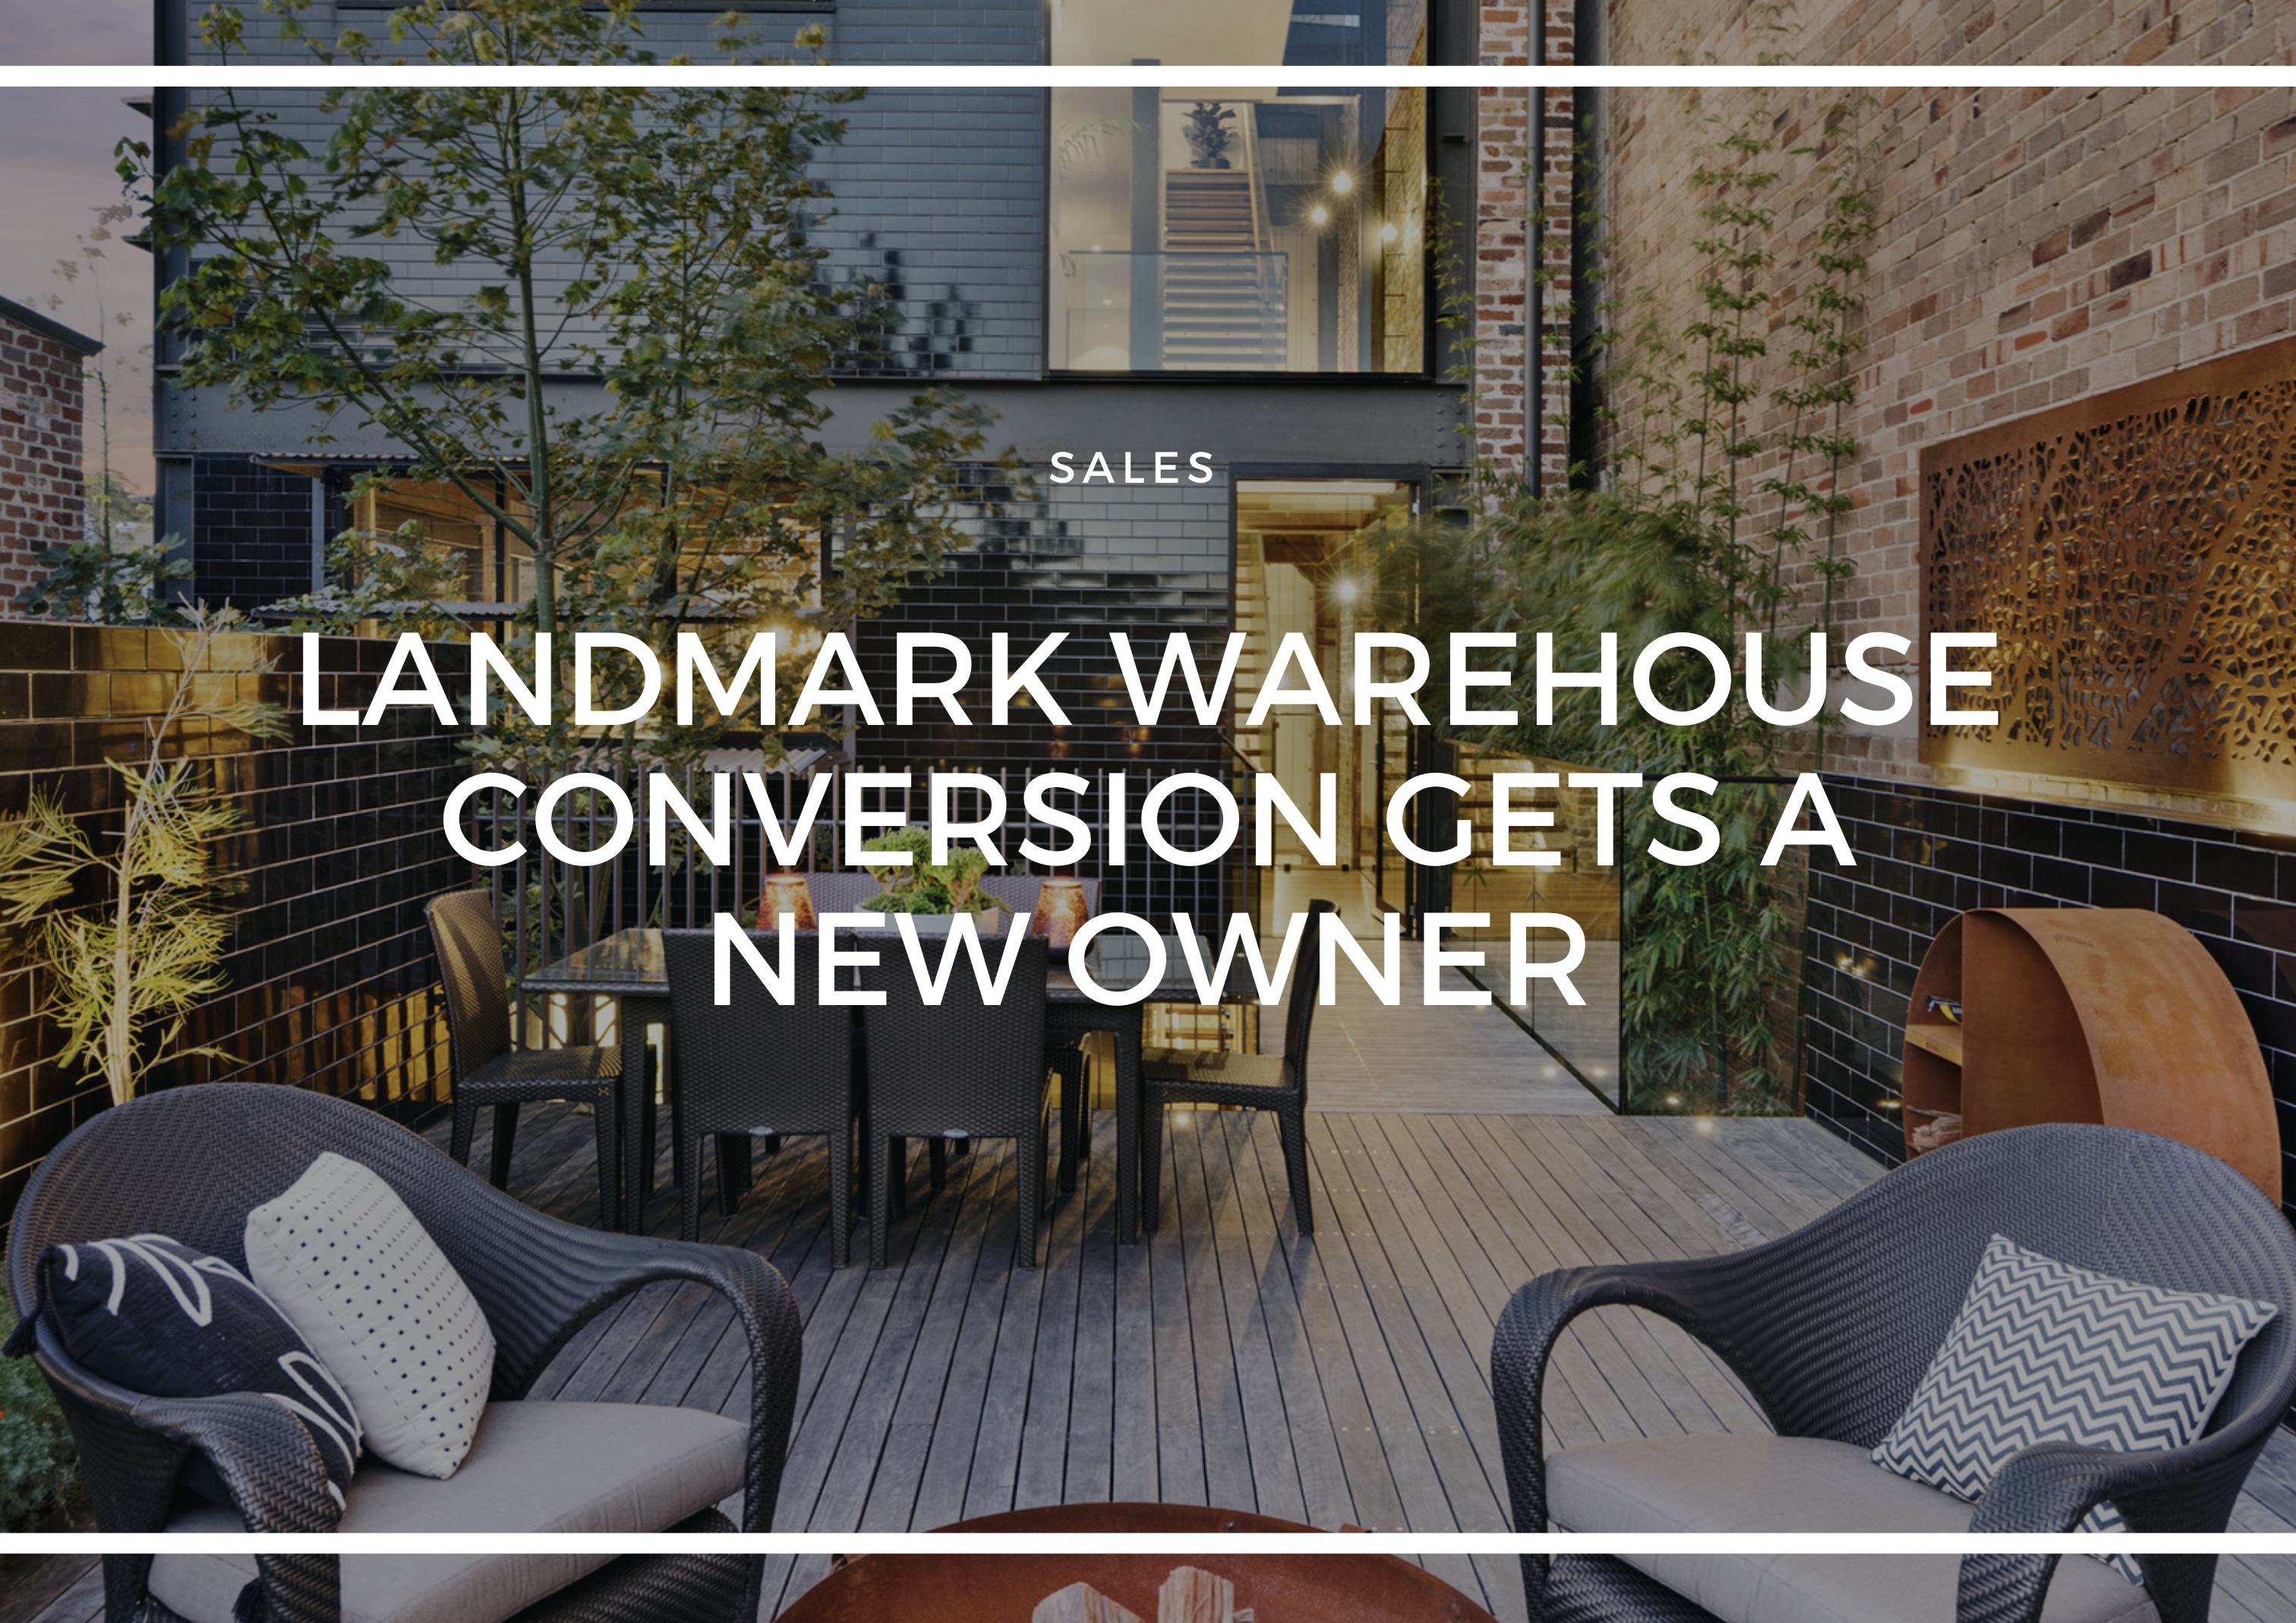 LANDMARK WAREHOUSE CONVERSION GETS A NEW OWNER